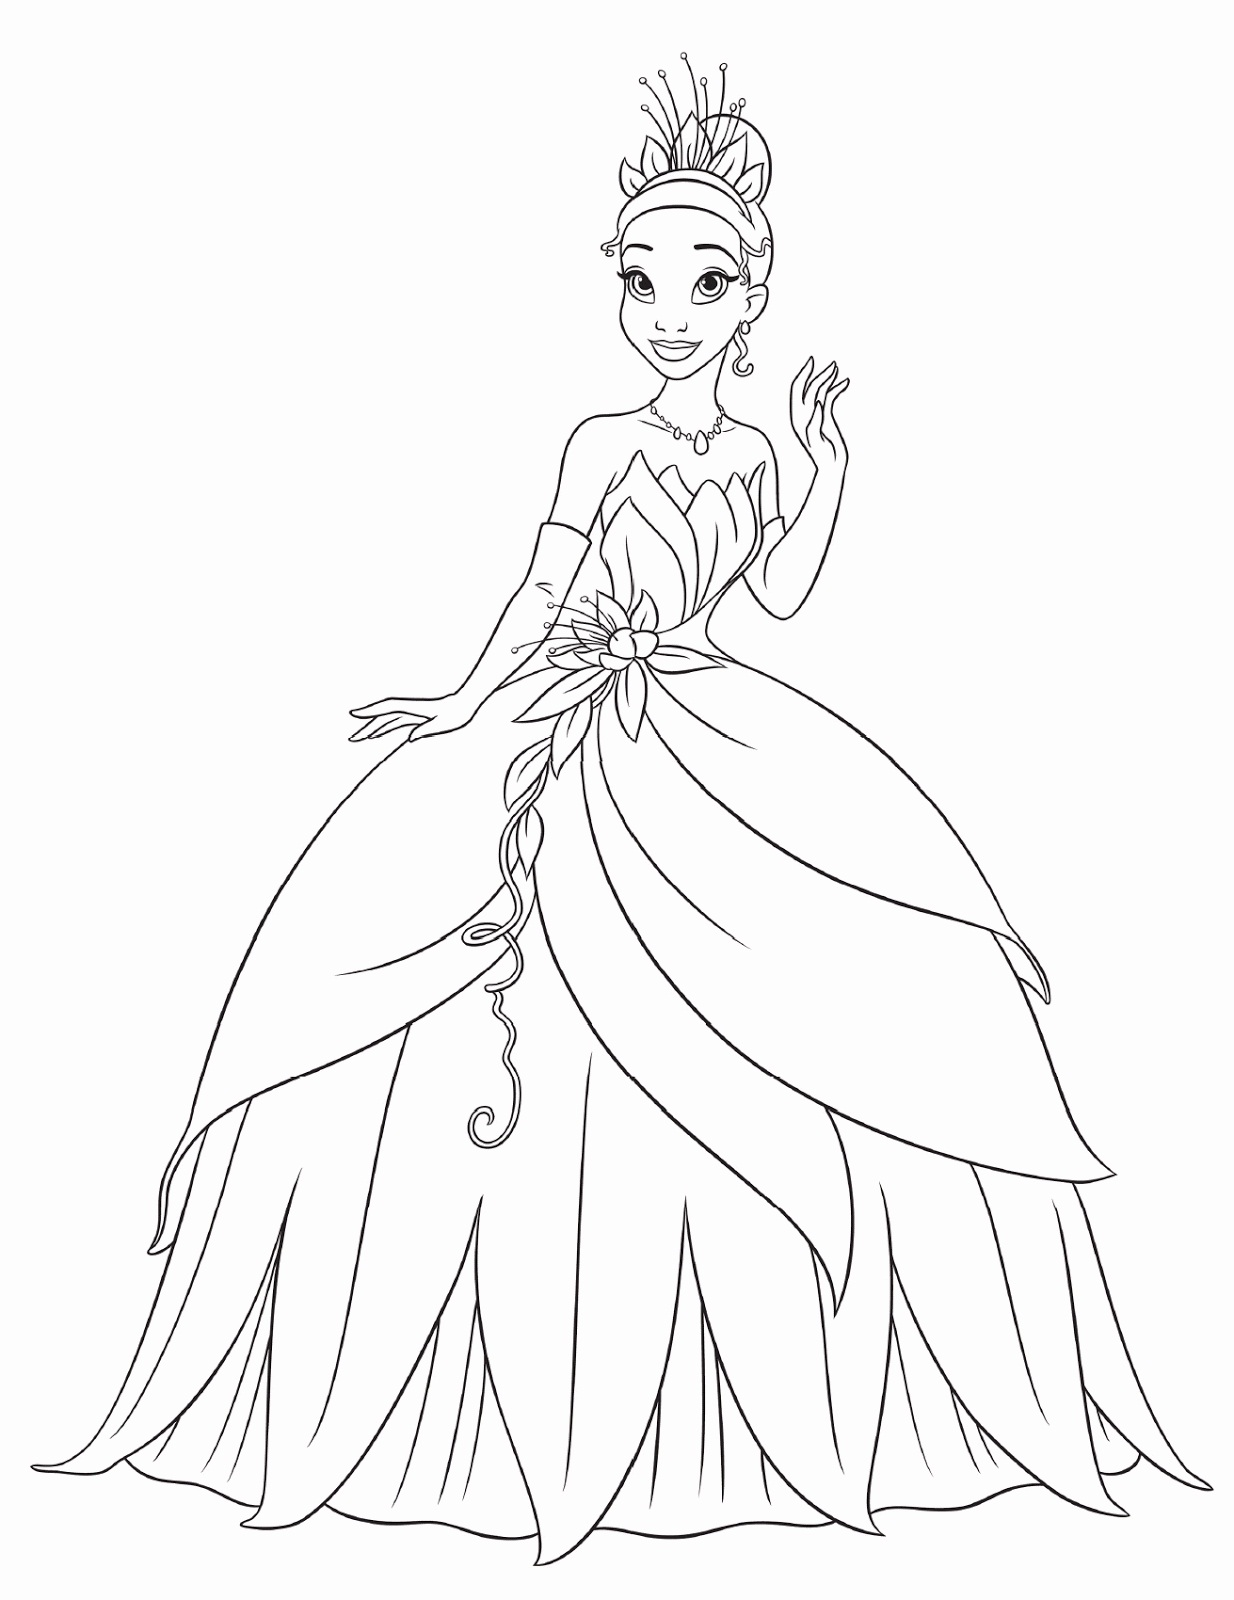 printable princess coloring pages - photo#33